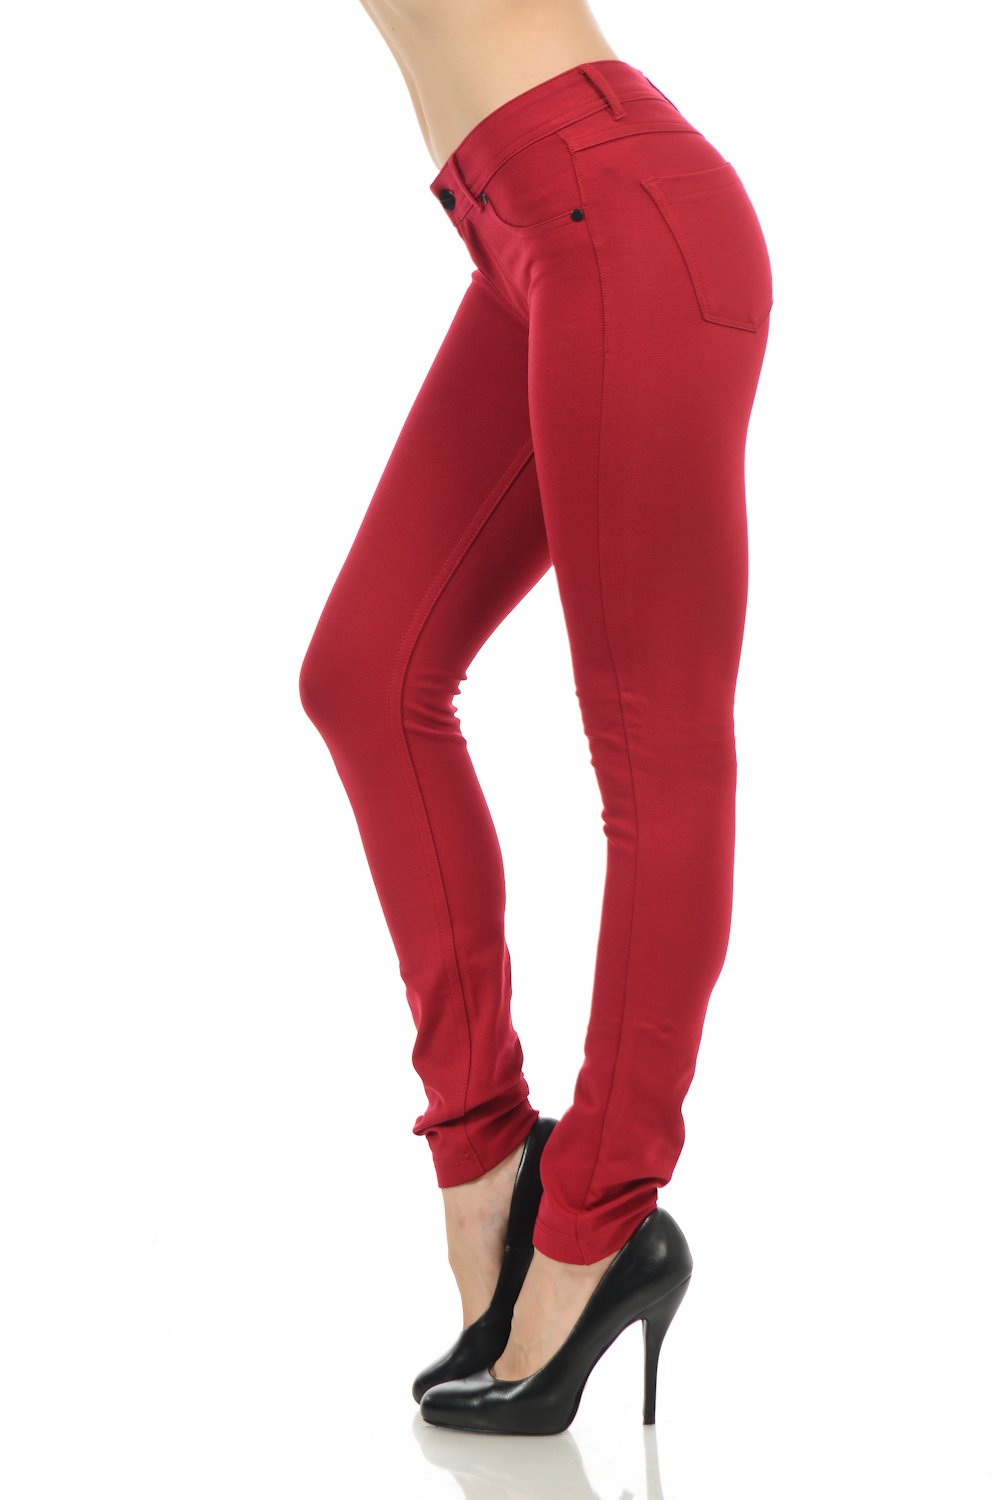 YourStyle Stretchy Slim Fit Skinny Long Jegging Pants (Small, Dark Red)